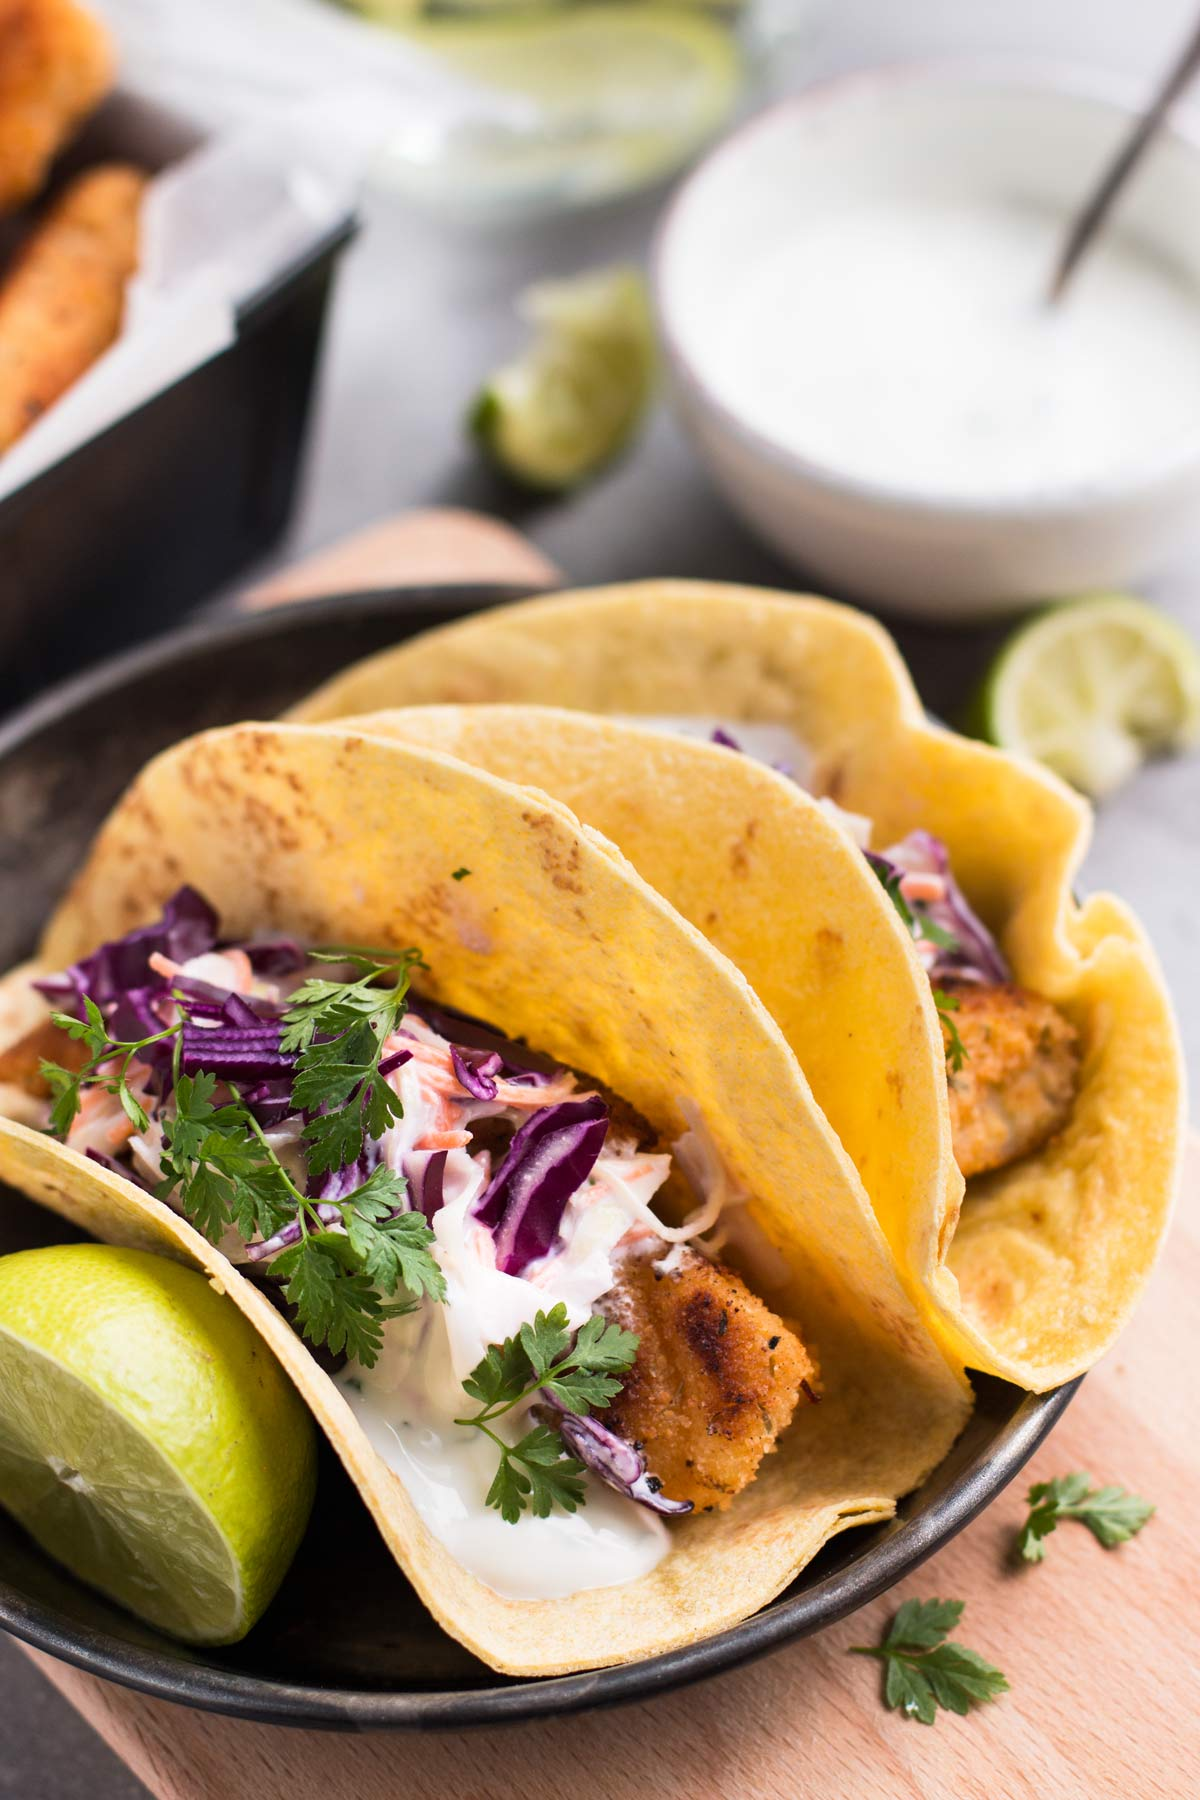 baja-fish-tacos-with-creamy-cilantro-lime-slaw-recipe-1